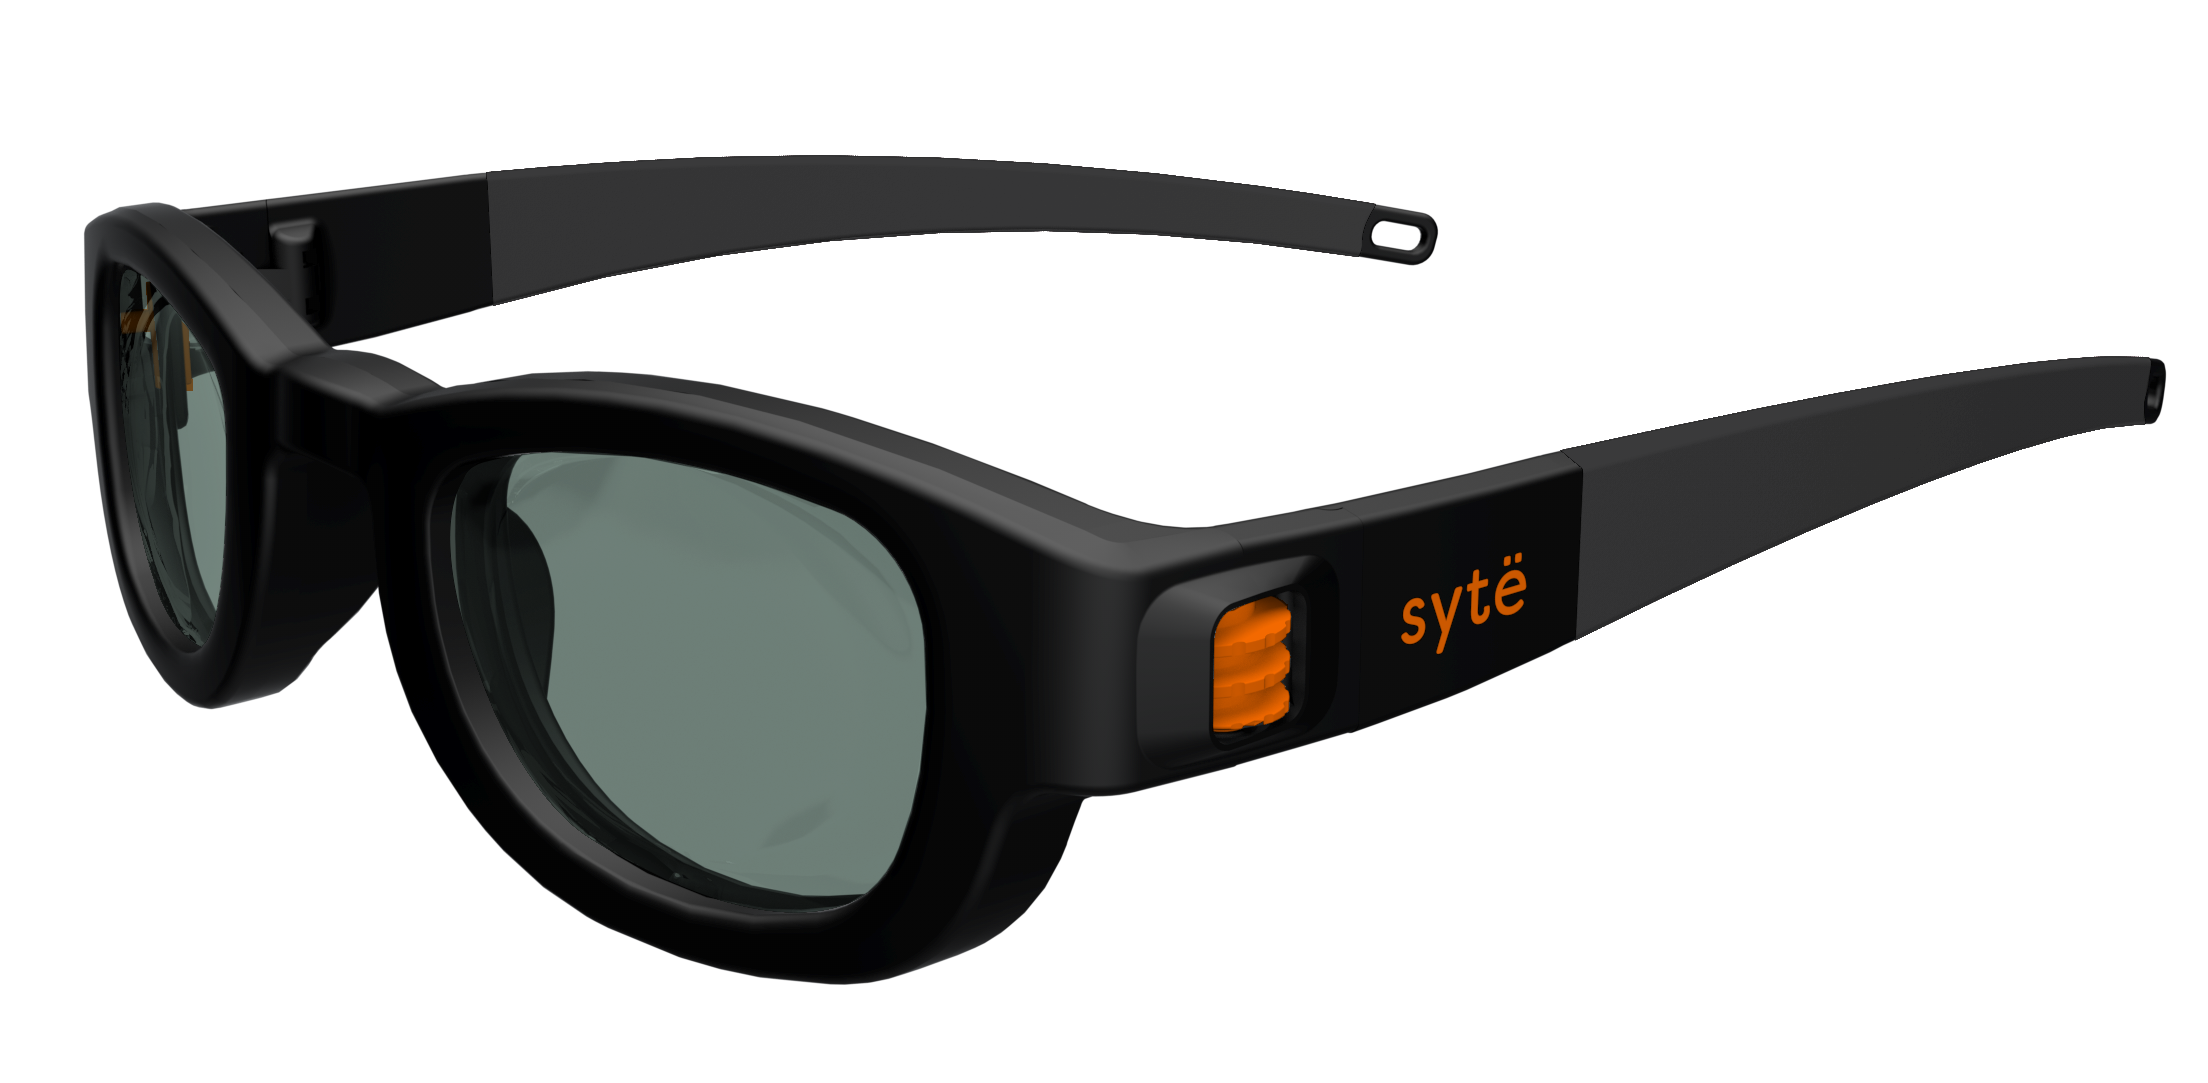 S007   Dial: Orange Temple: Black Diopter: (+) or (-)